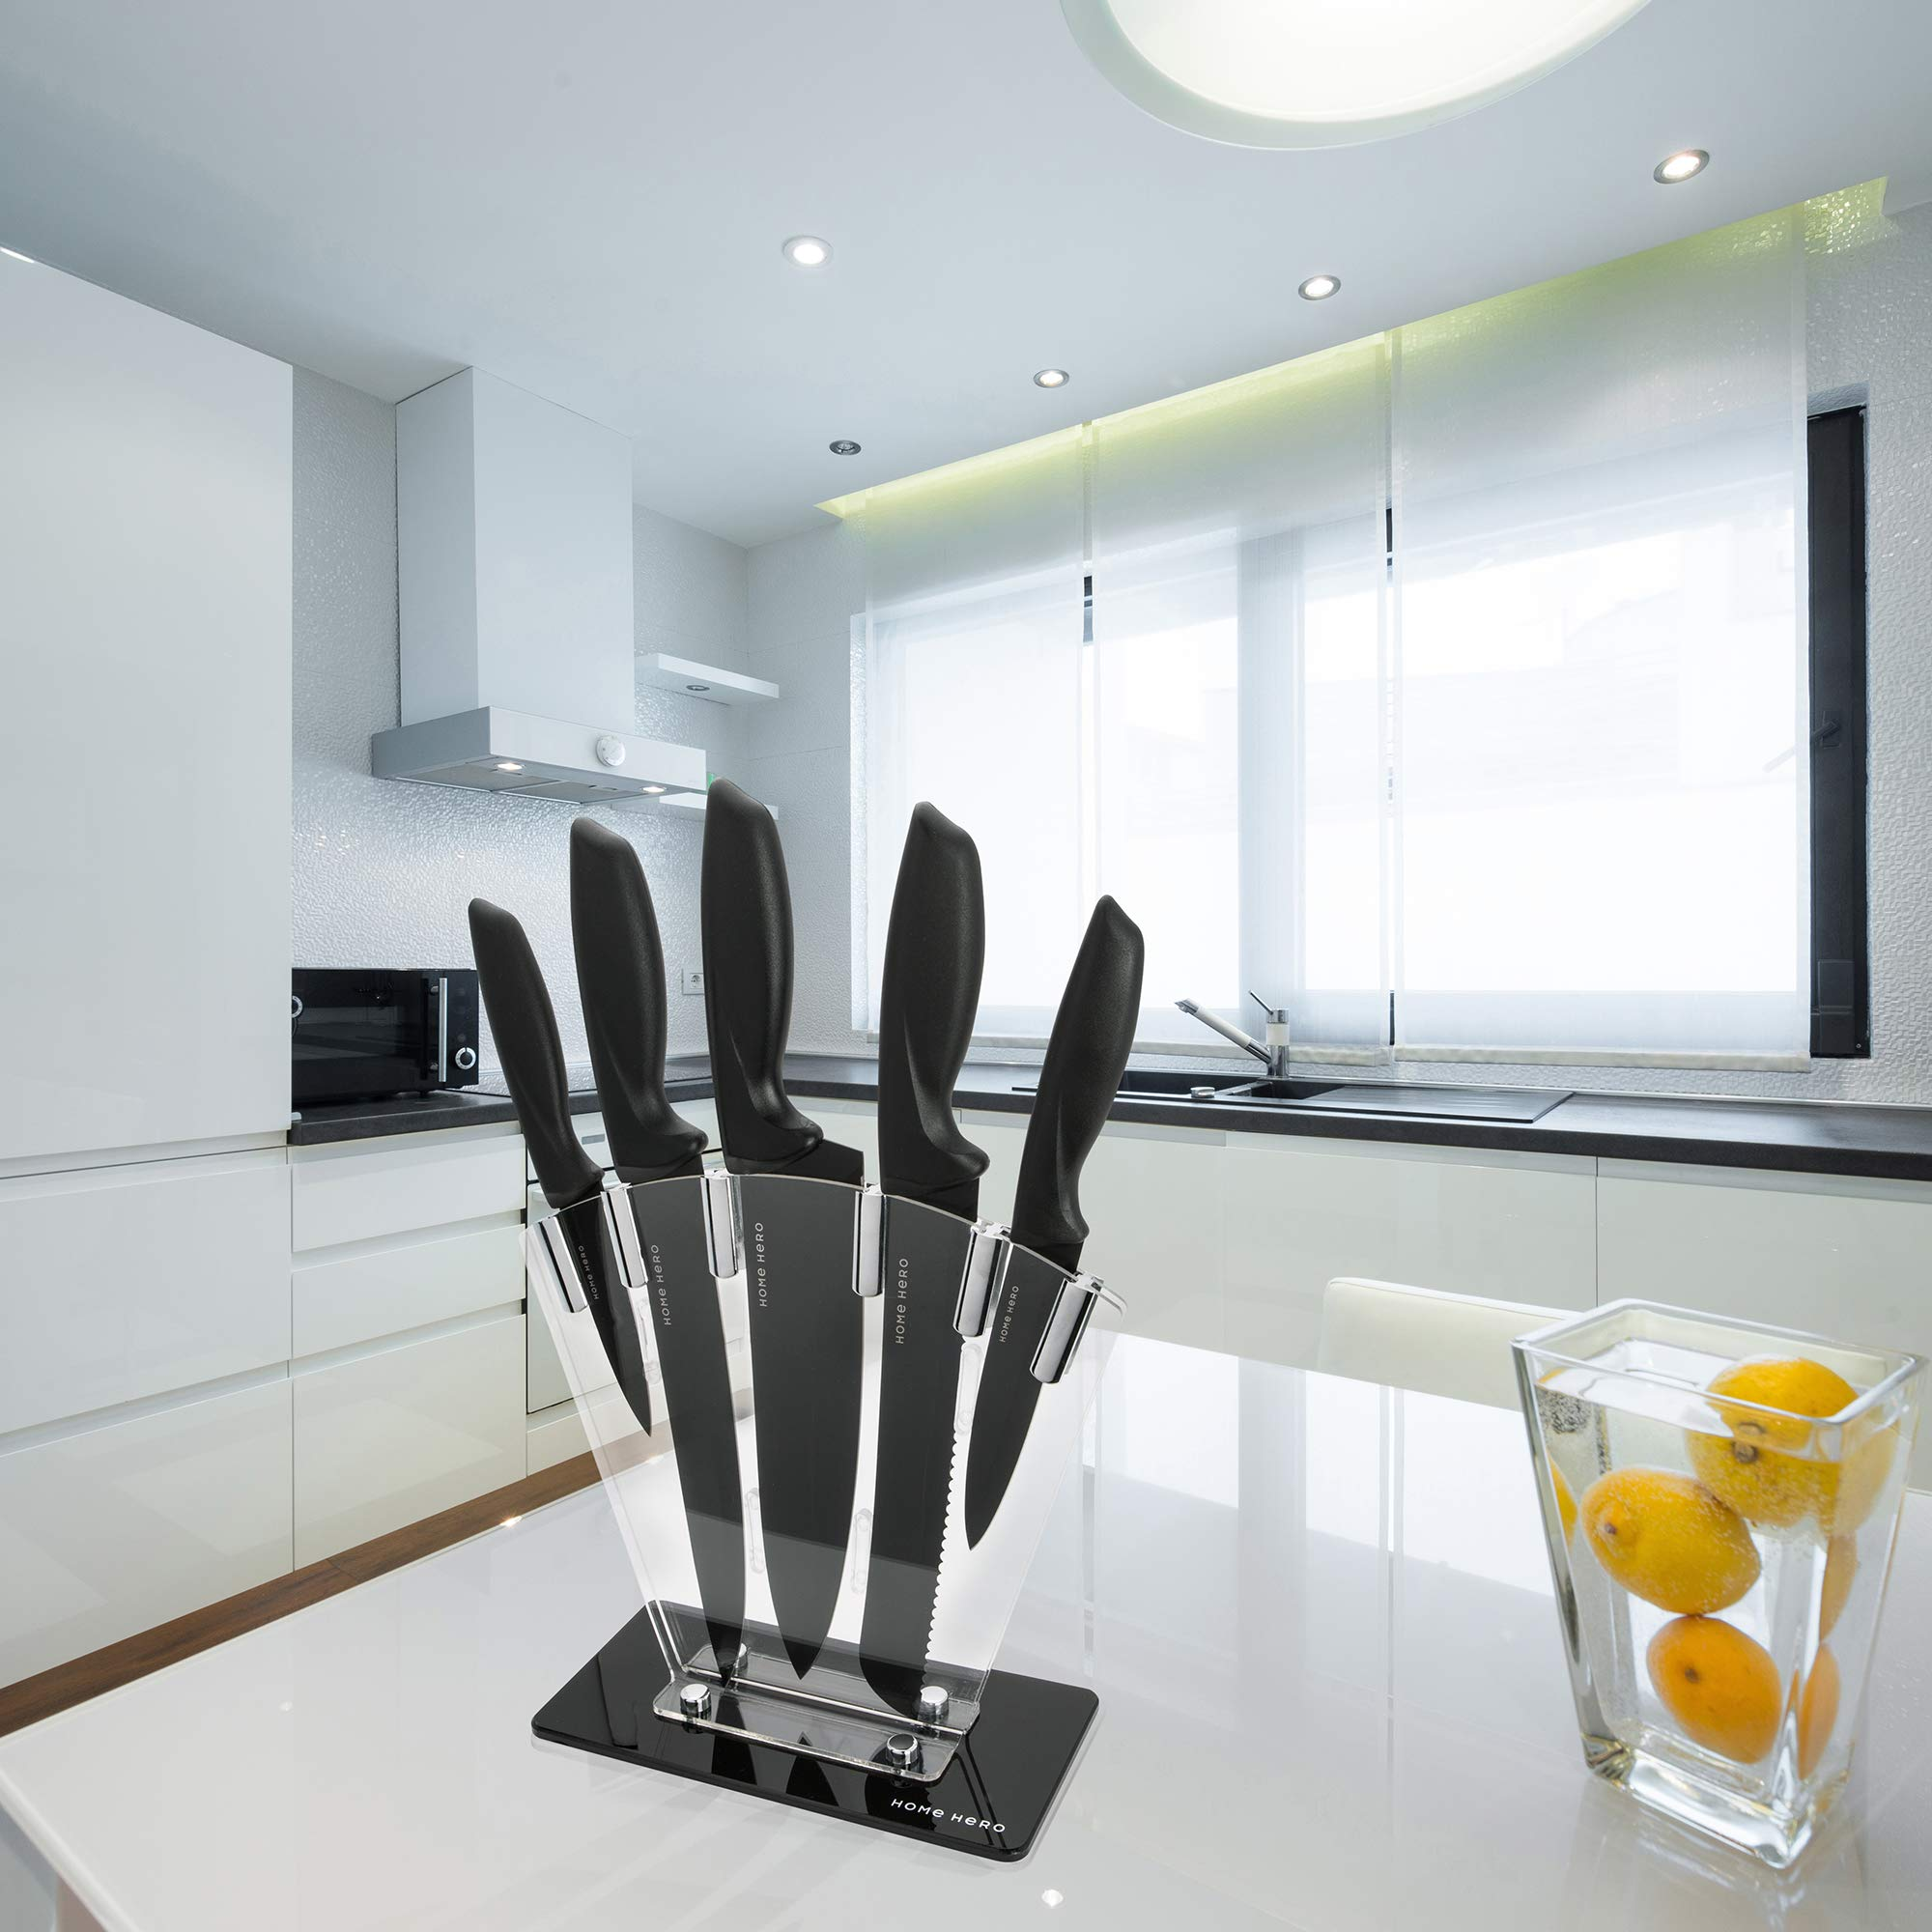 Chef Knife Set Knives Kitchen Set - Kitchen Knives Set Kitchen Knife Set with Stand - Plus Professional Knife Sharpener - 7 Piece Stainless Steel Cutlery Knives Set by HomeHero by HomeHero (Image #7)